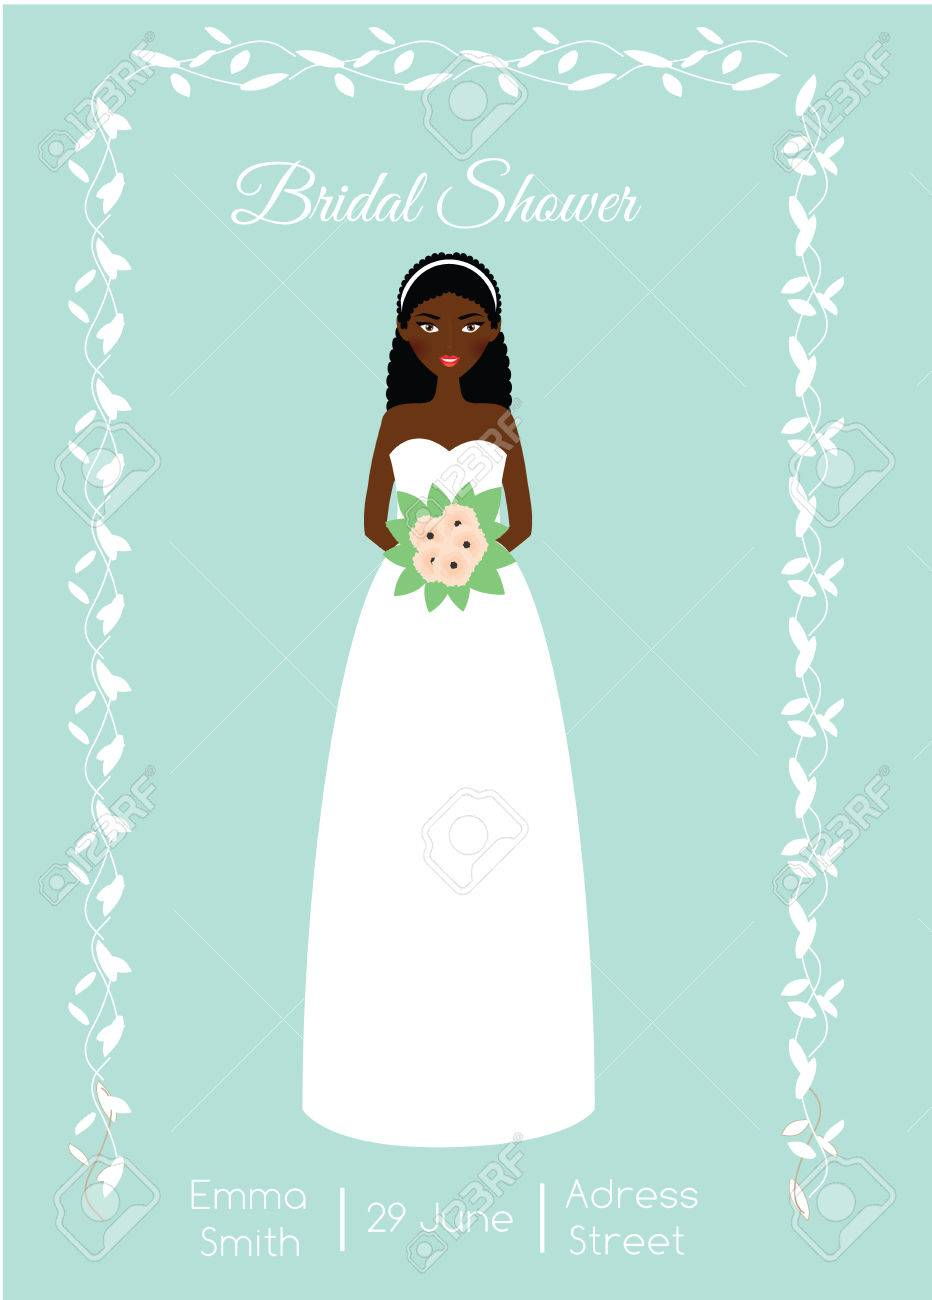 ed888cdbd17d Bridal shower card with smiling happy bride. African american woman in  fashion wedding dress.